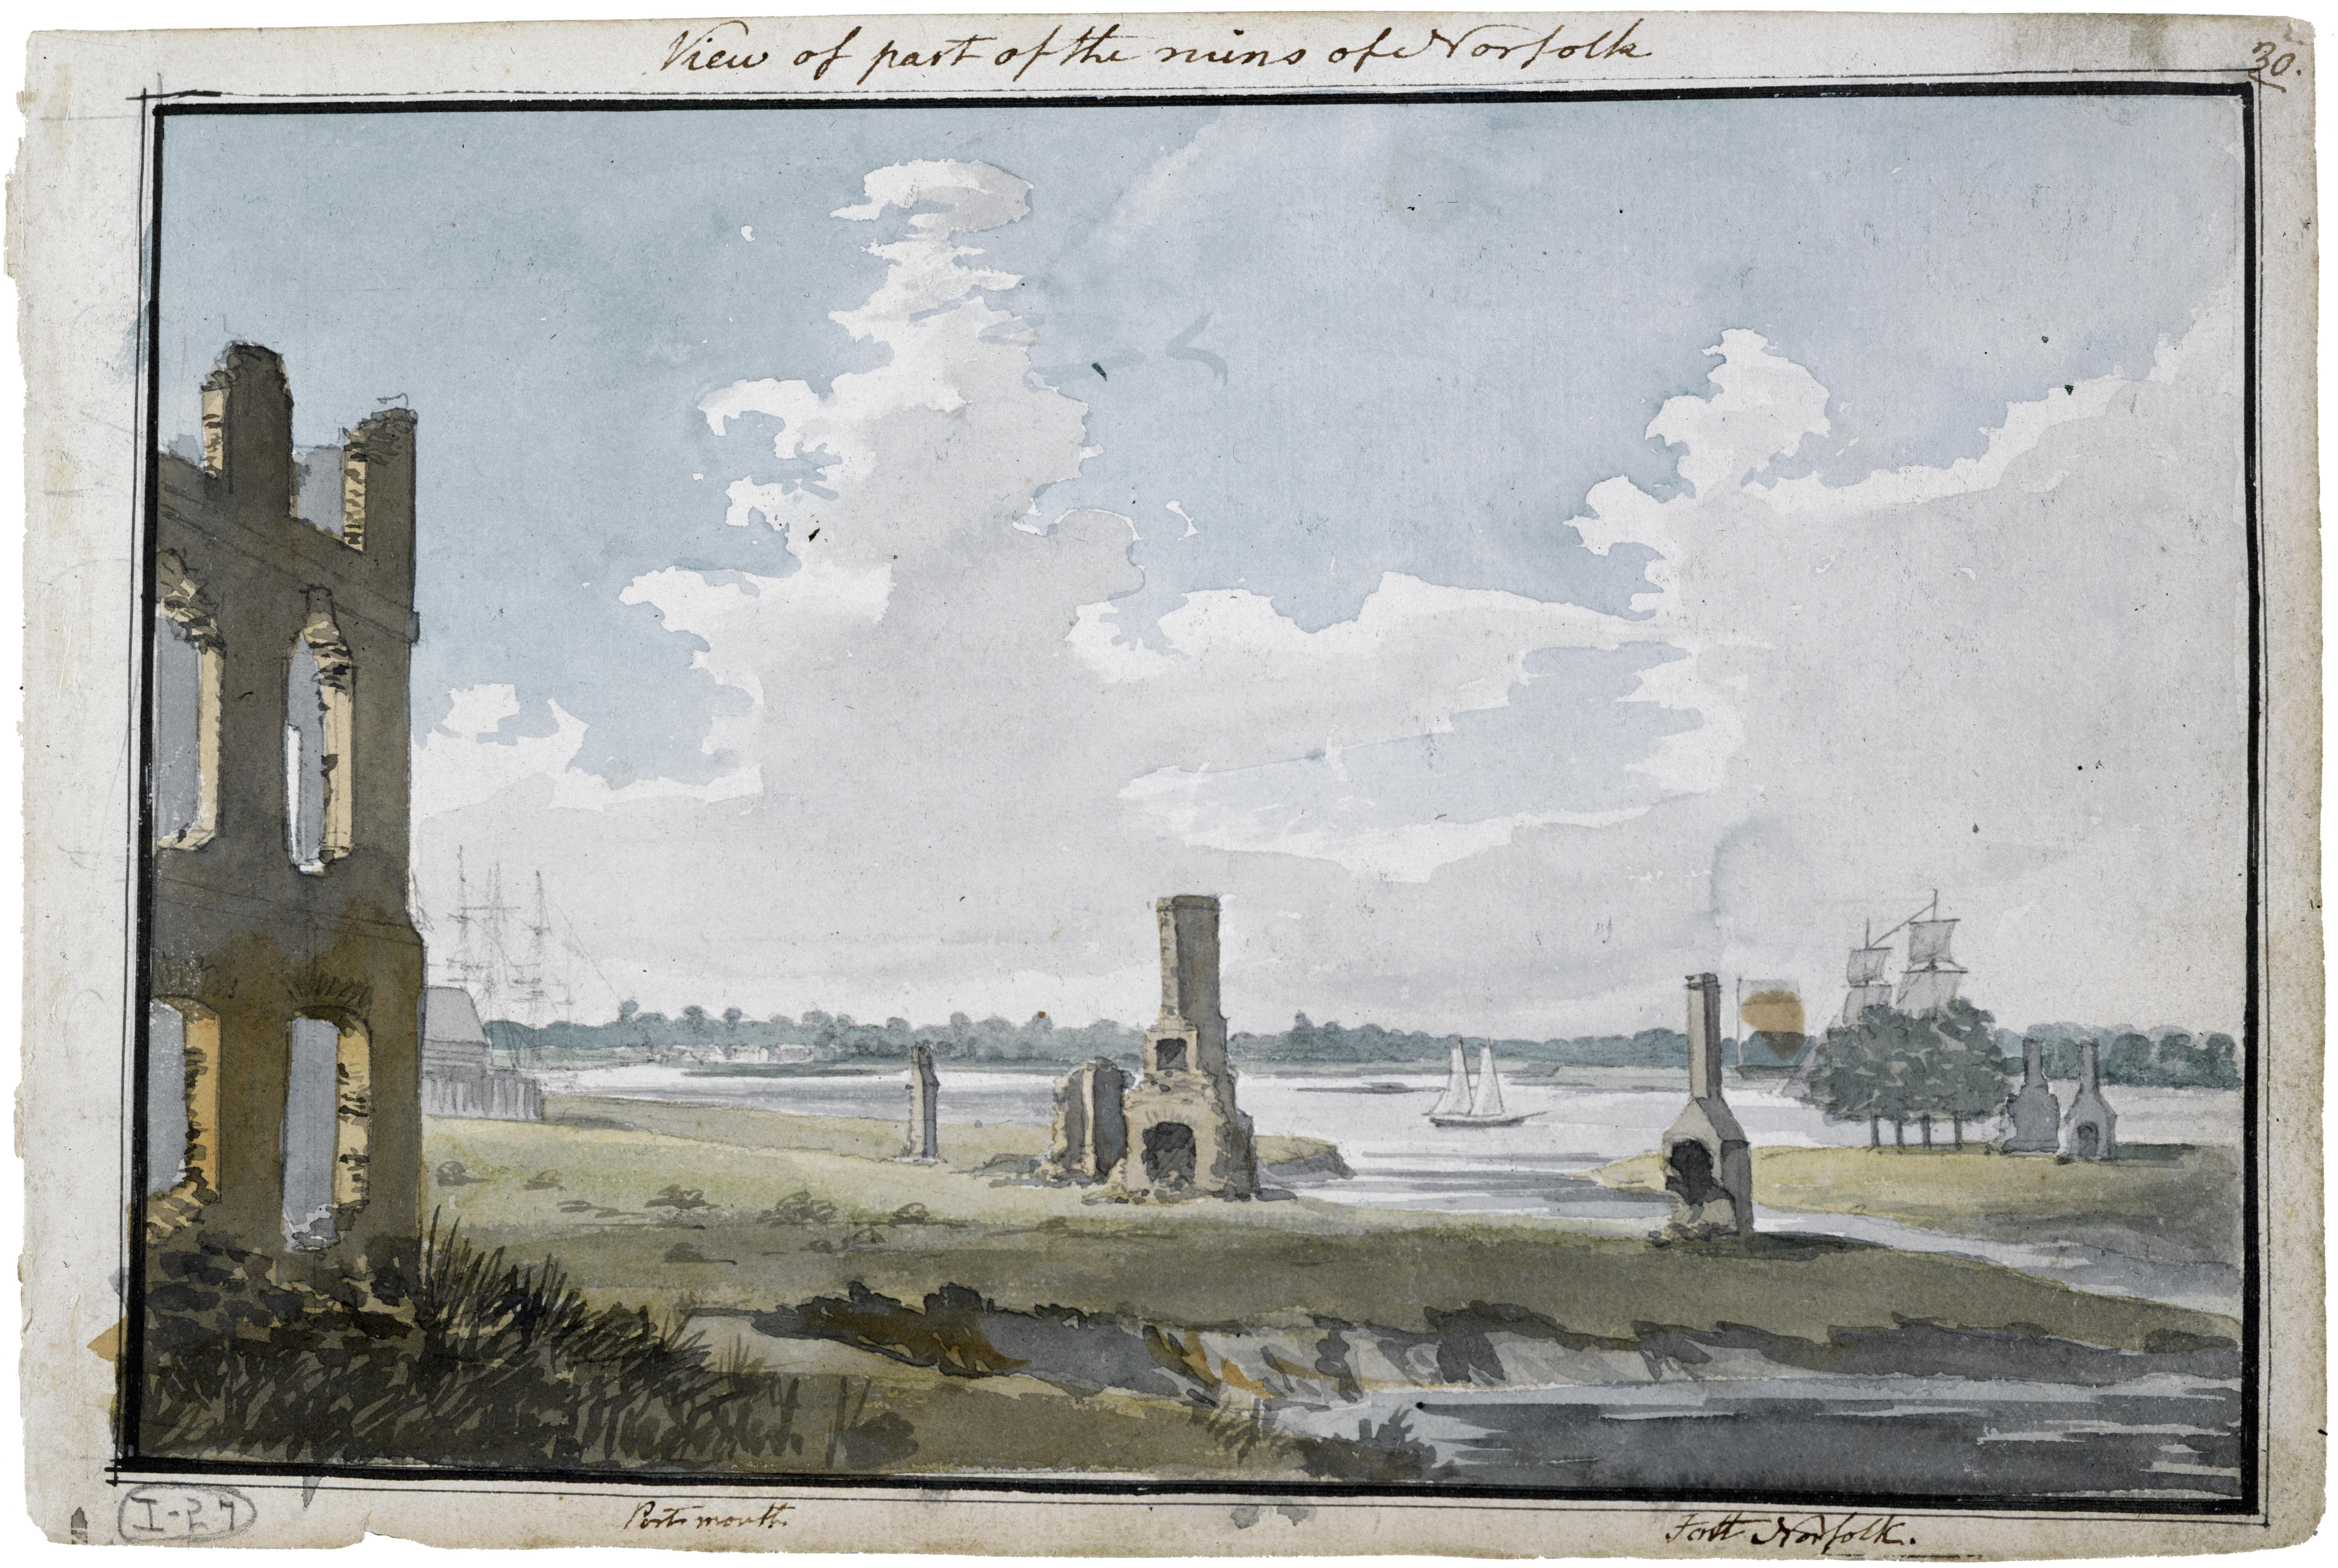 1796–98, watercolour, 17.7 x 26.6 cm. Collection of Maryland Historical Society (1960-108-1-1-27).